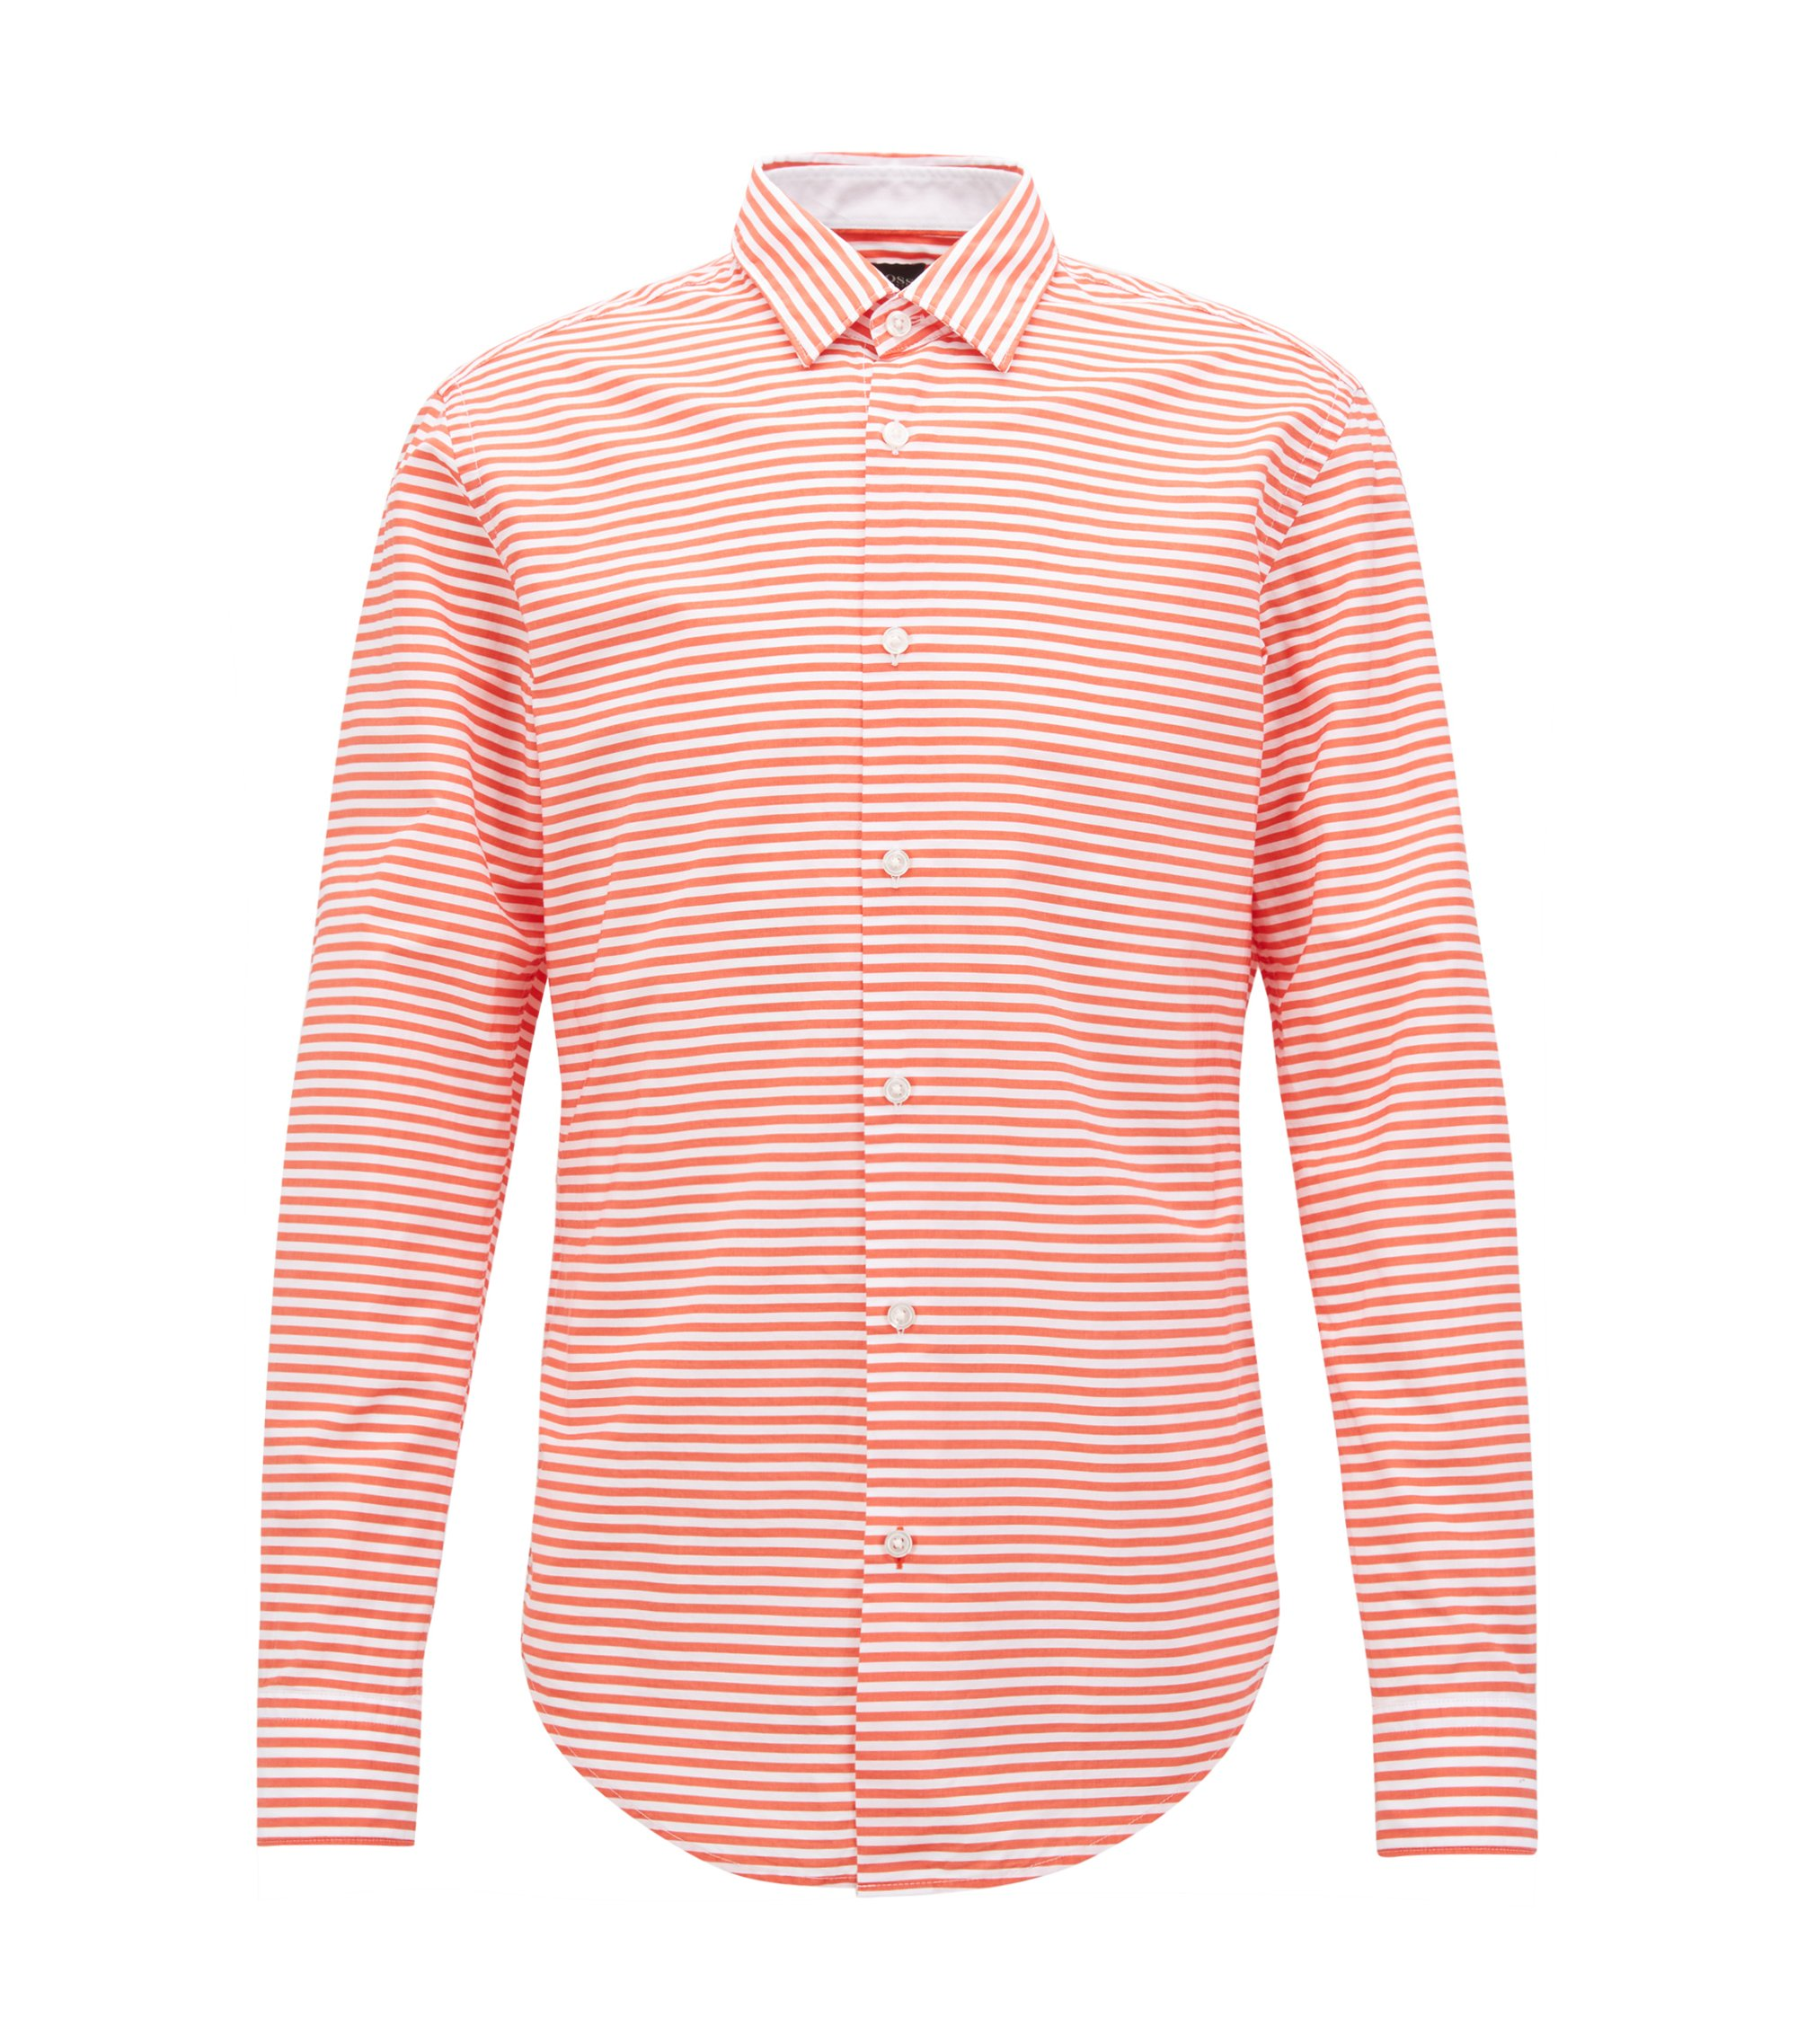 Slim-fit shirt in striped cotton poplin, Orange